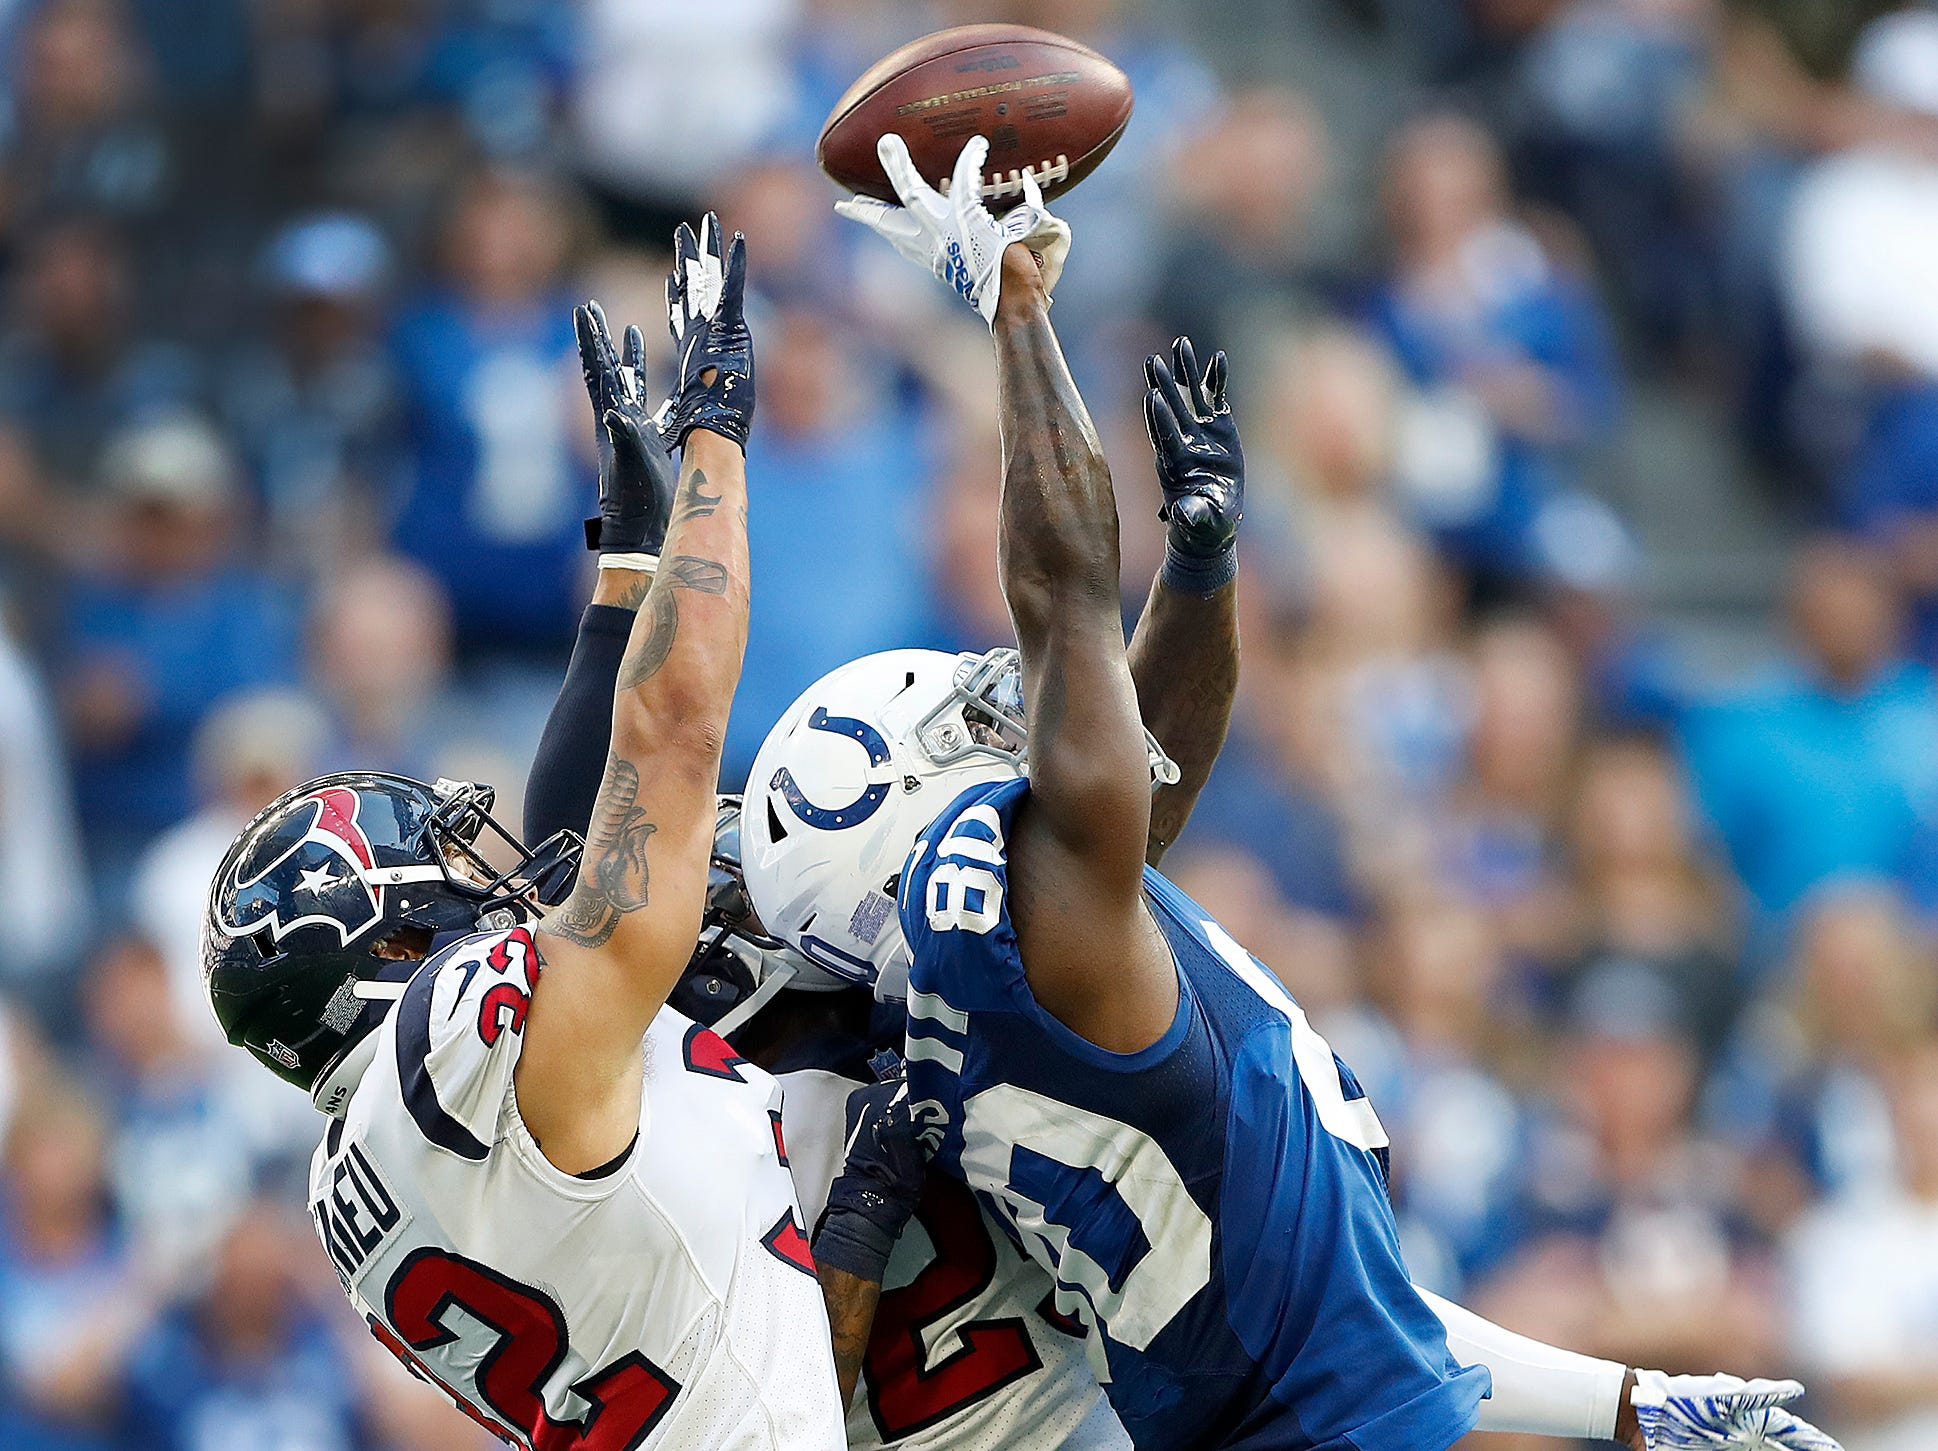 Indianapolis Colts wide receiver Chester Rogers (80) could not come up with this catch as Houston Texans defensive back Tyrann Mathieu (32) defends in the second half of their game on Sunday, Sept. 30, 2018. The Indianapolis Colts lost 37-34 in overtime to the Houston Texans.